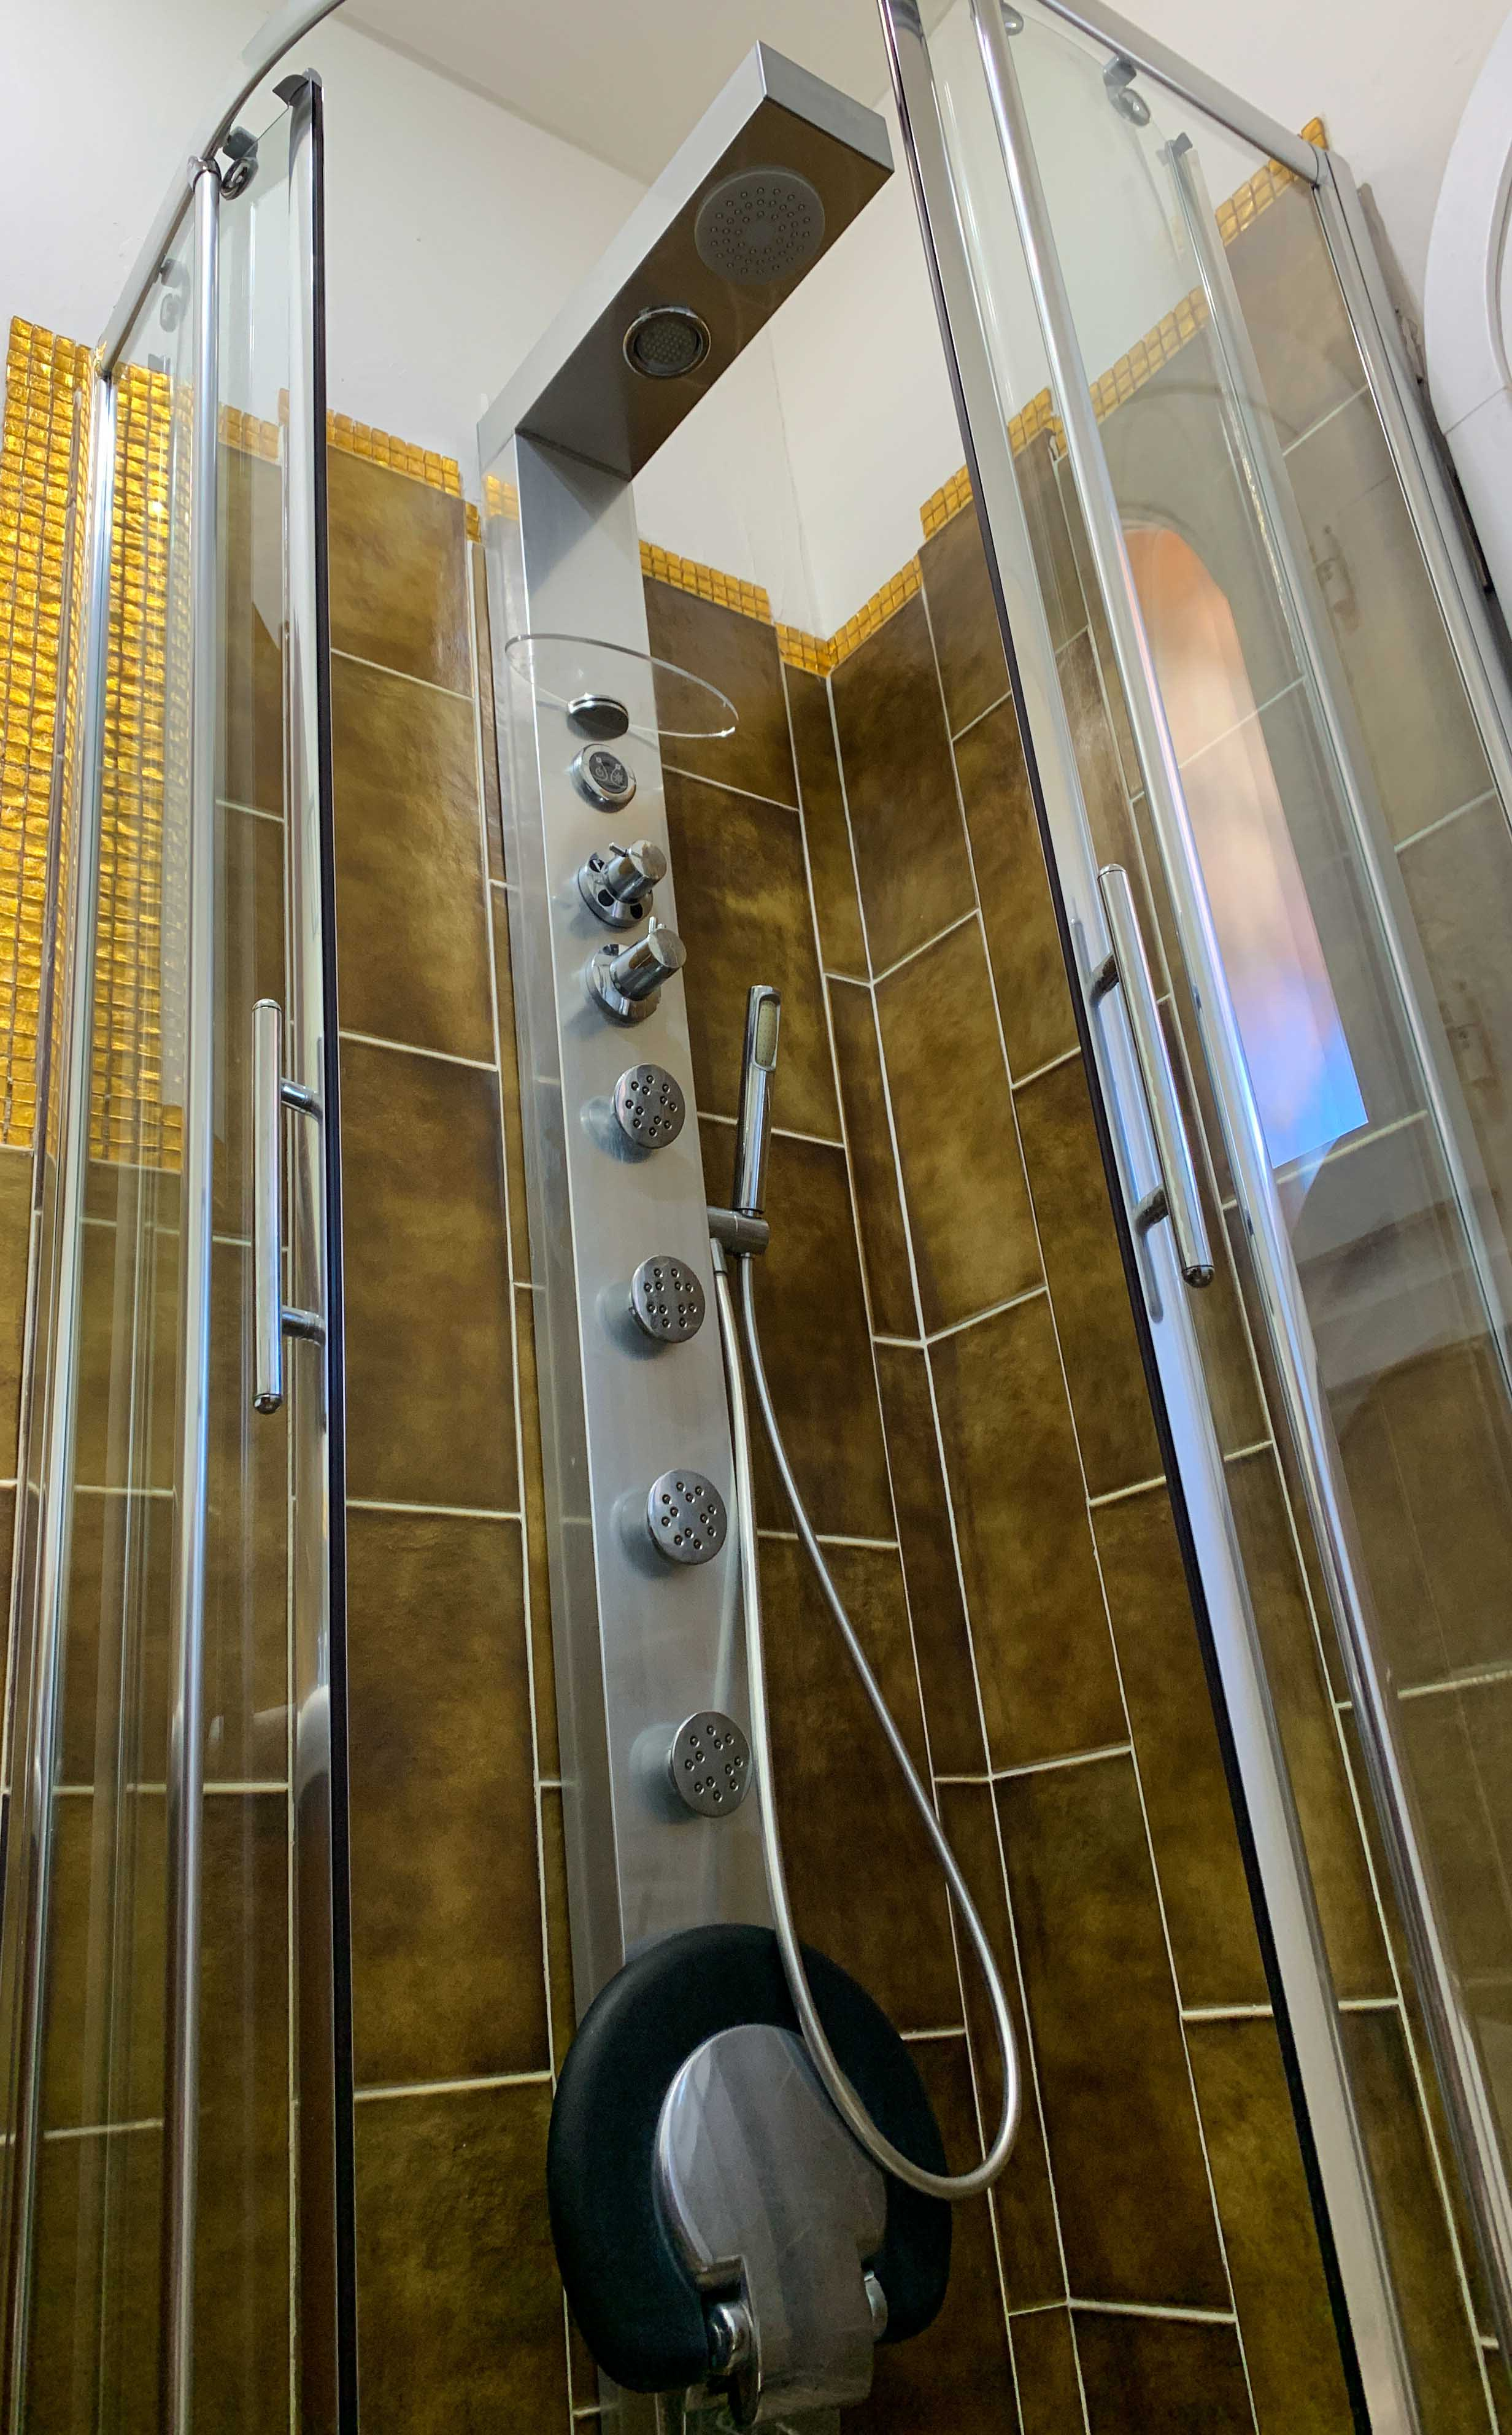 Bathroom 2 - full-optional, hydromassage shower